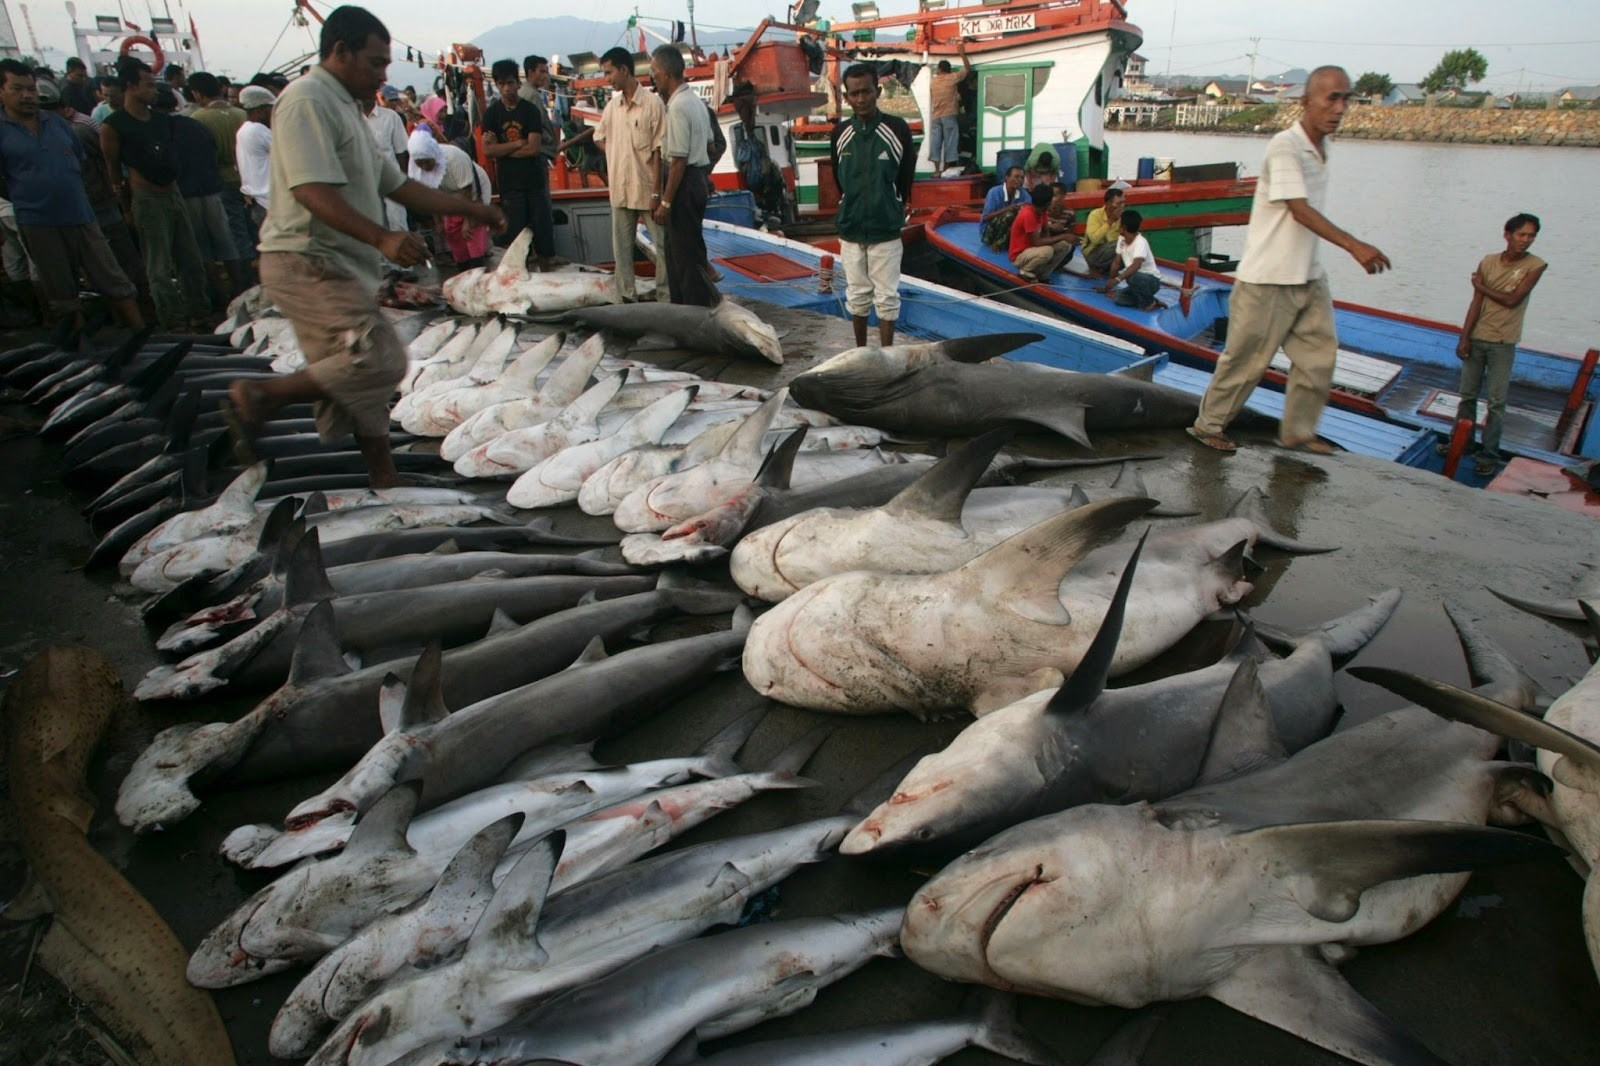 pictured are dead sharks, which are caught and sold for their meat